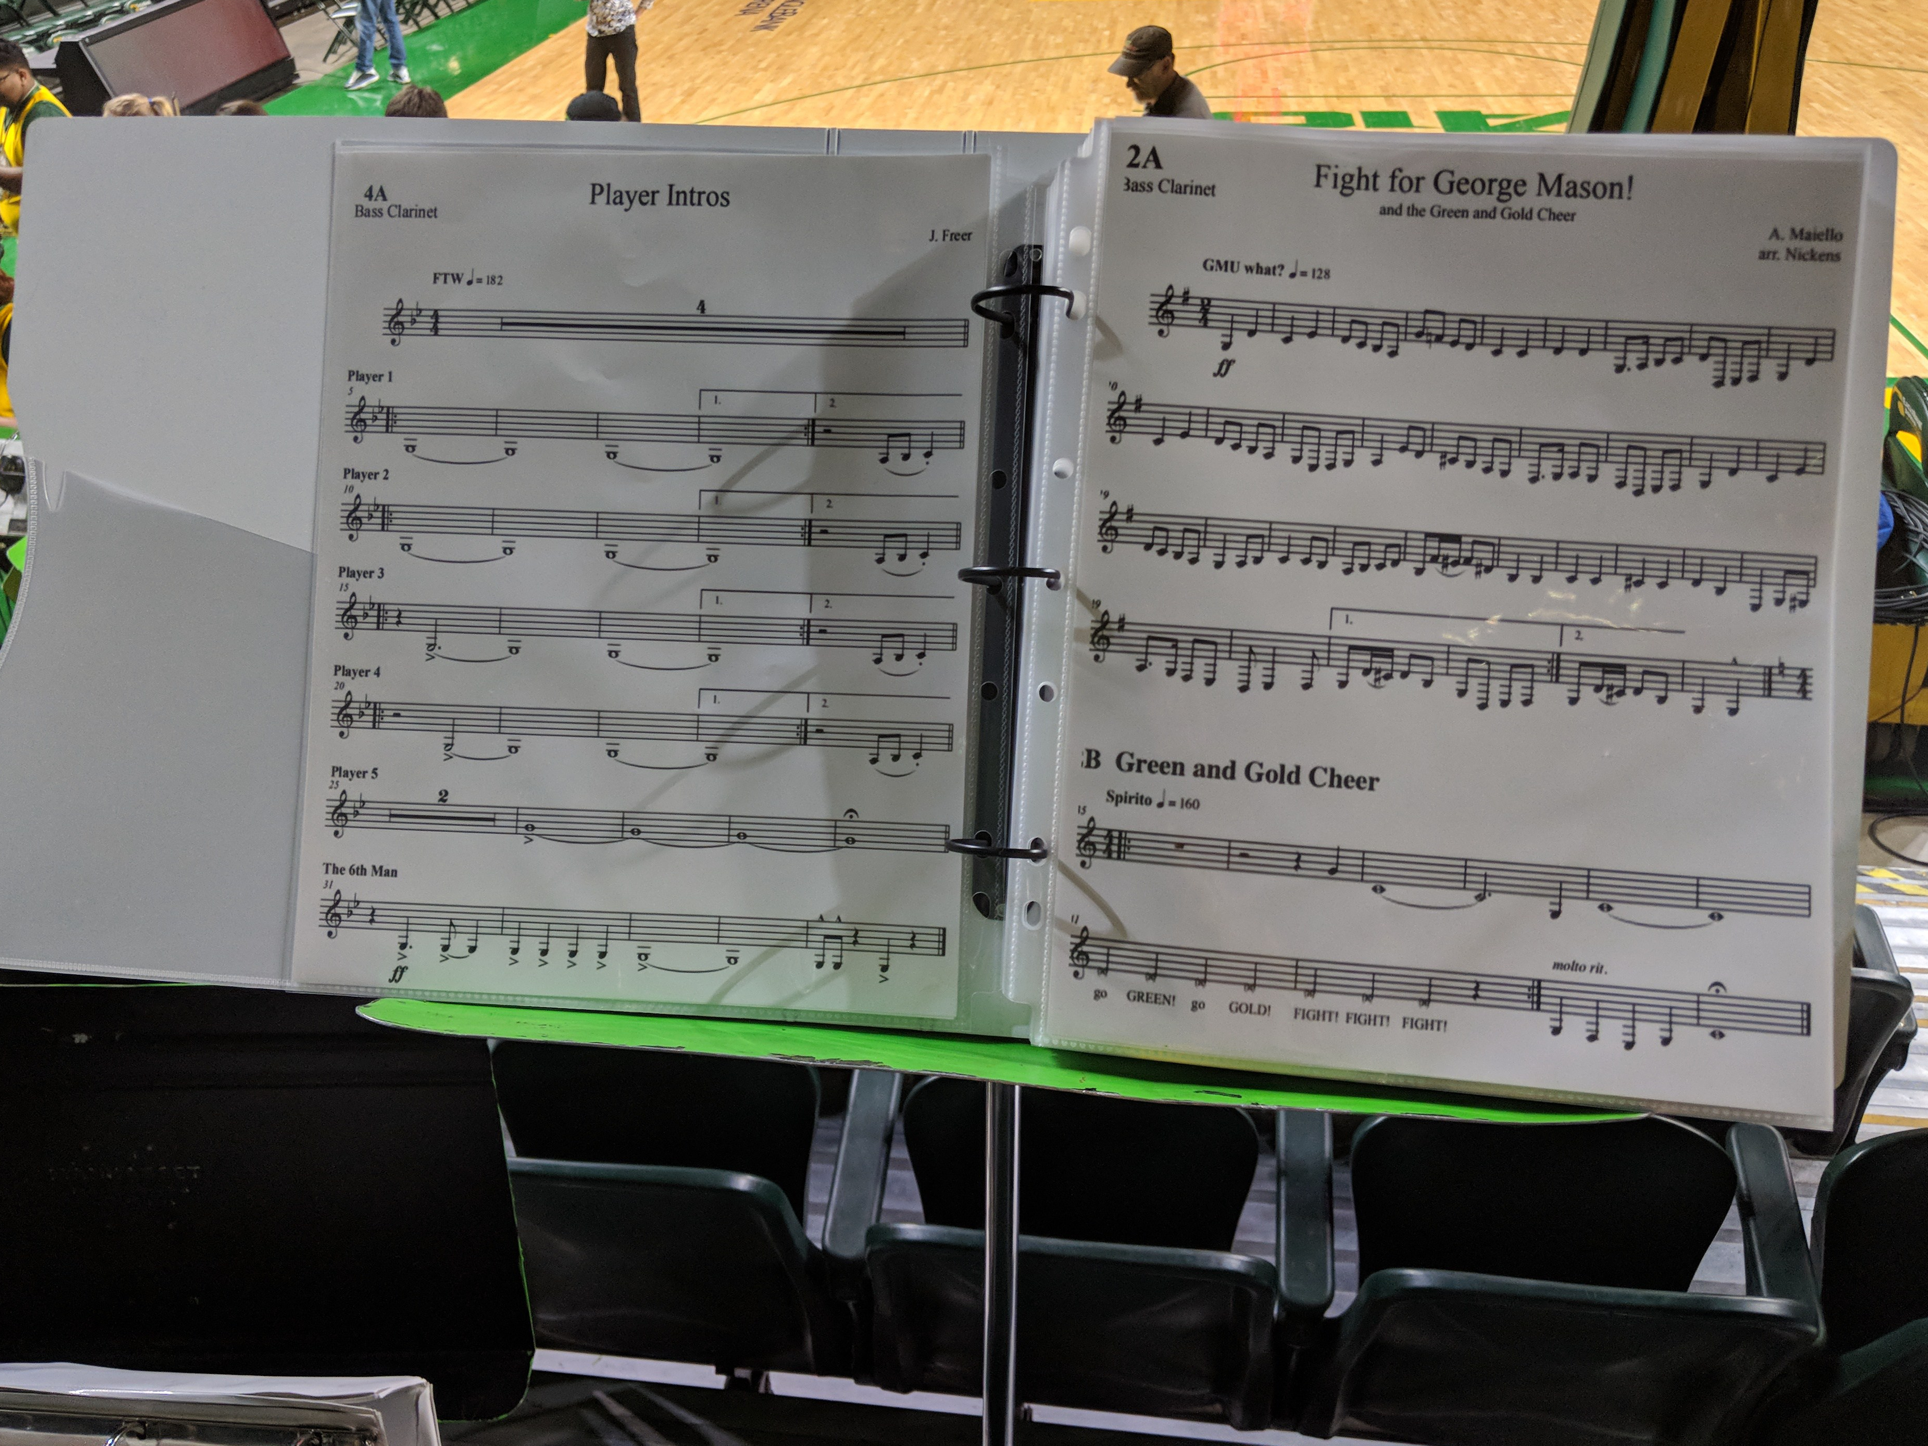 A binder with sheet music resting on a stand.